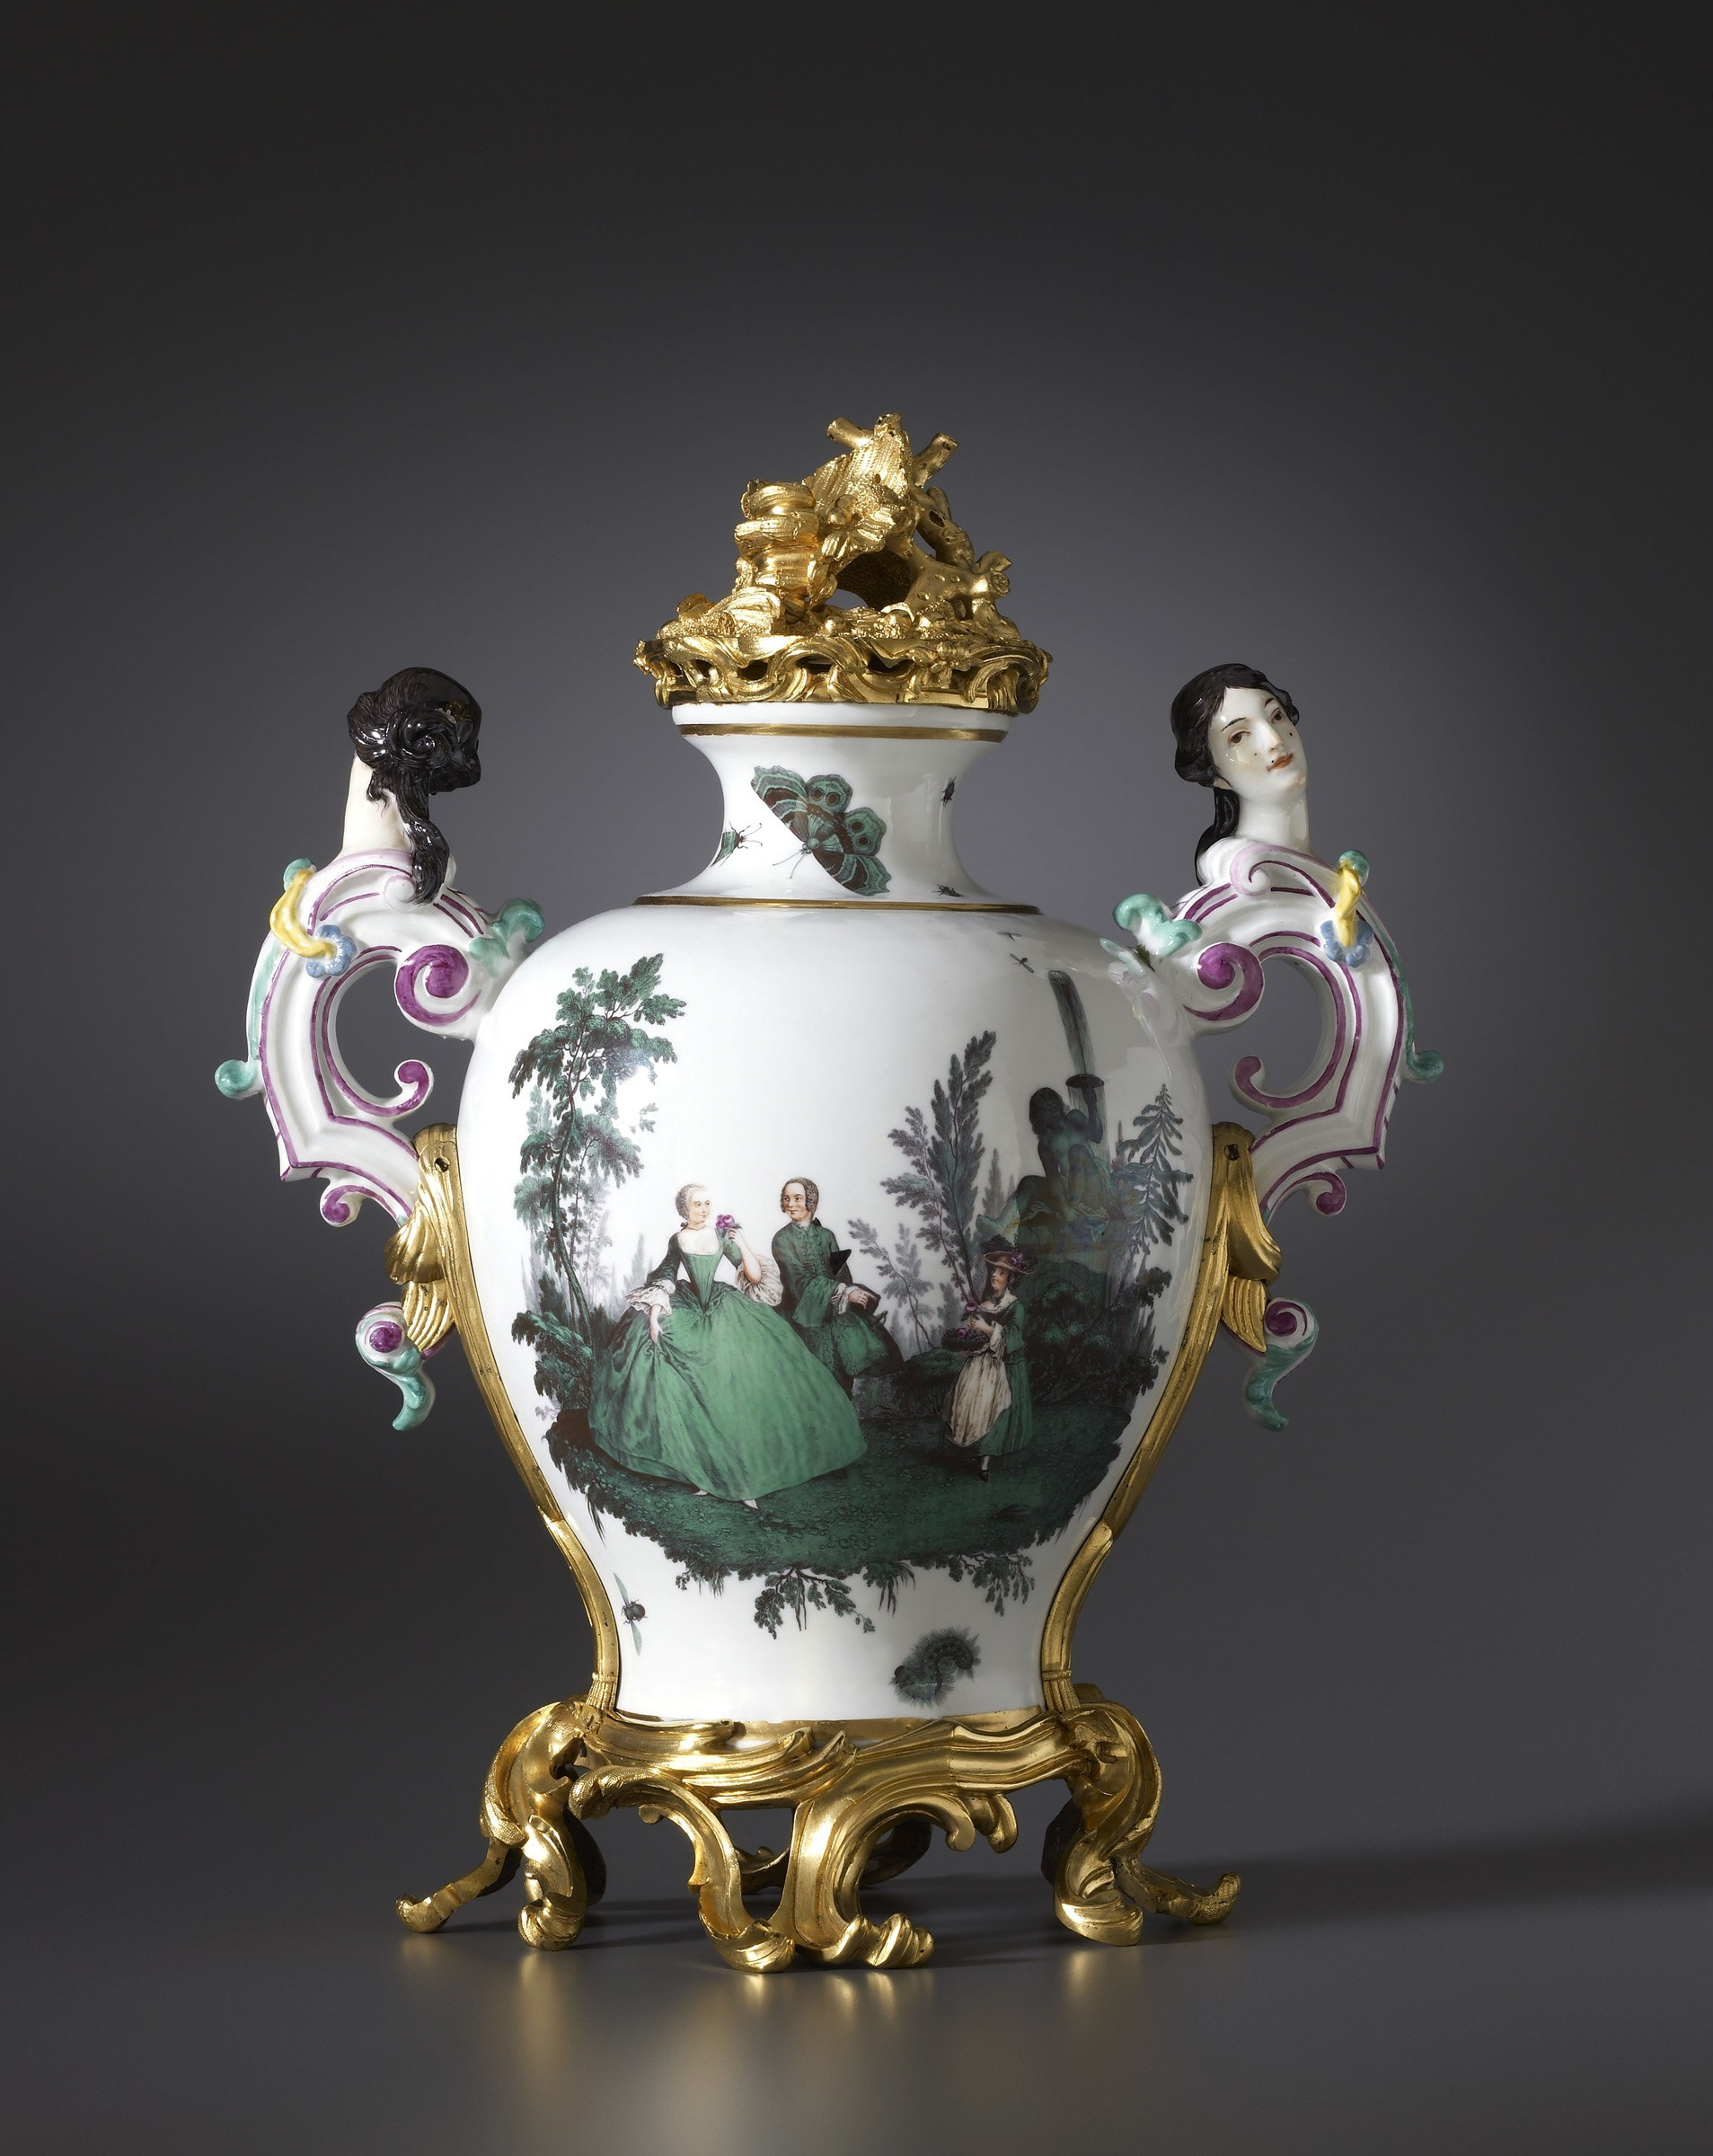 Vintage Capodimonte Vase Of Meissen A Louis Xv Vase by Meissen Almost Certainly Modelled by for A Louis Xv Vase by Meissen Almost Certainly Modelled by Johann Joachim Ka¤ndler